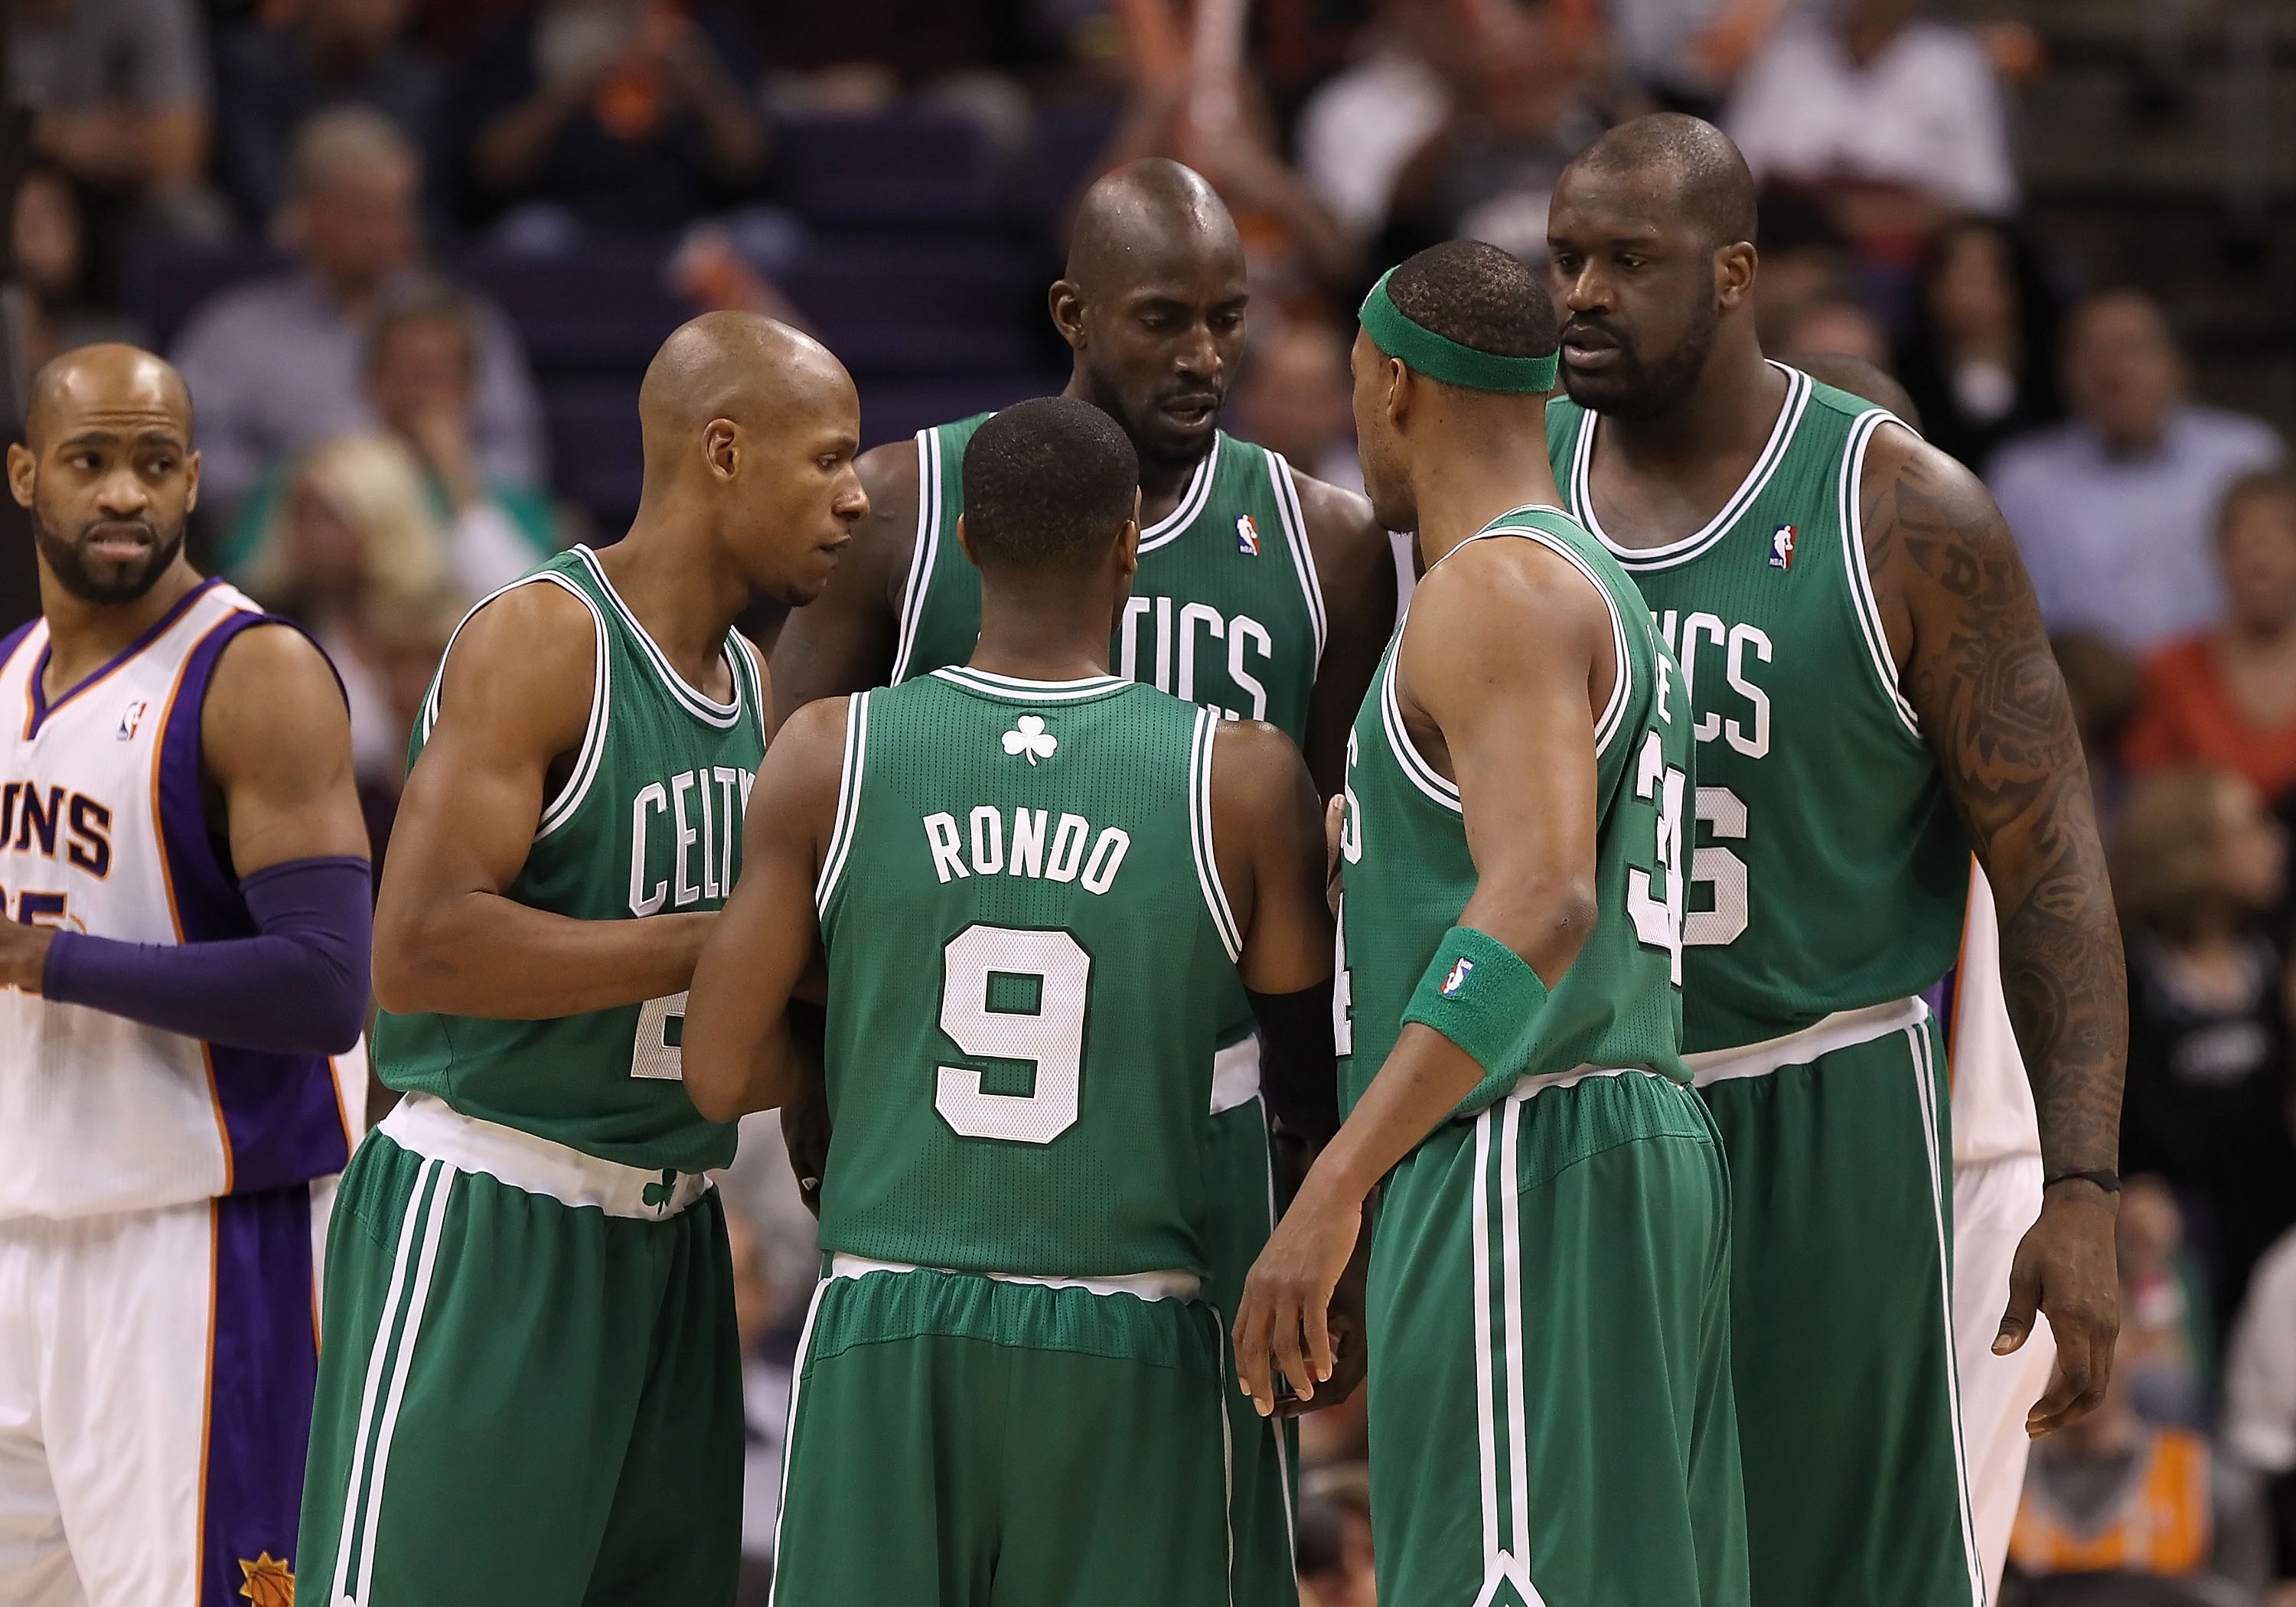 PHOENIX, AZ - JANUARY 28:  (L-R) Ray Allen #20, Rajon Rondo #9, Kevin Garnett #5, Paul Pierce #34 and Shaquille O'Neal #36 of the Boston Celtics huddle up during the NBA game against the Phoenix Suns at US Airways Center on January 28, 2011 in Phoenix, Ar